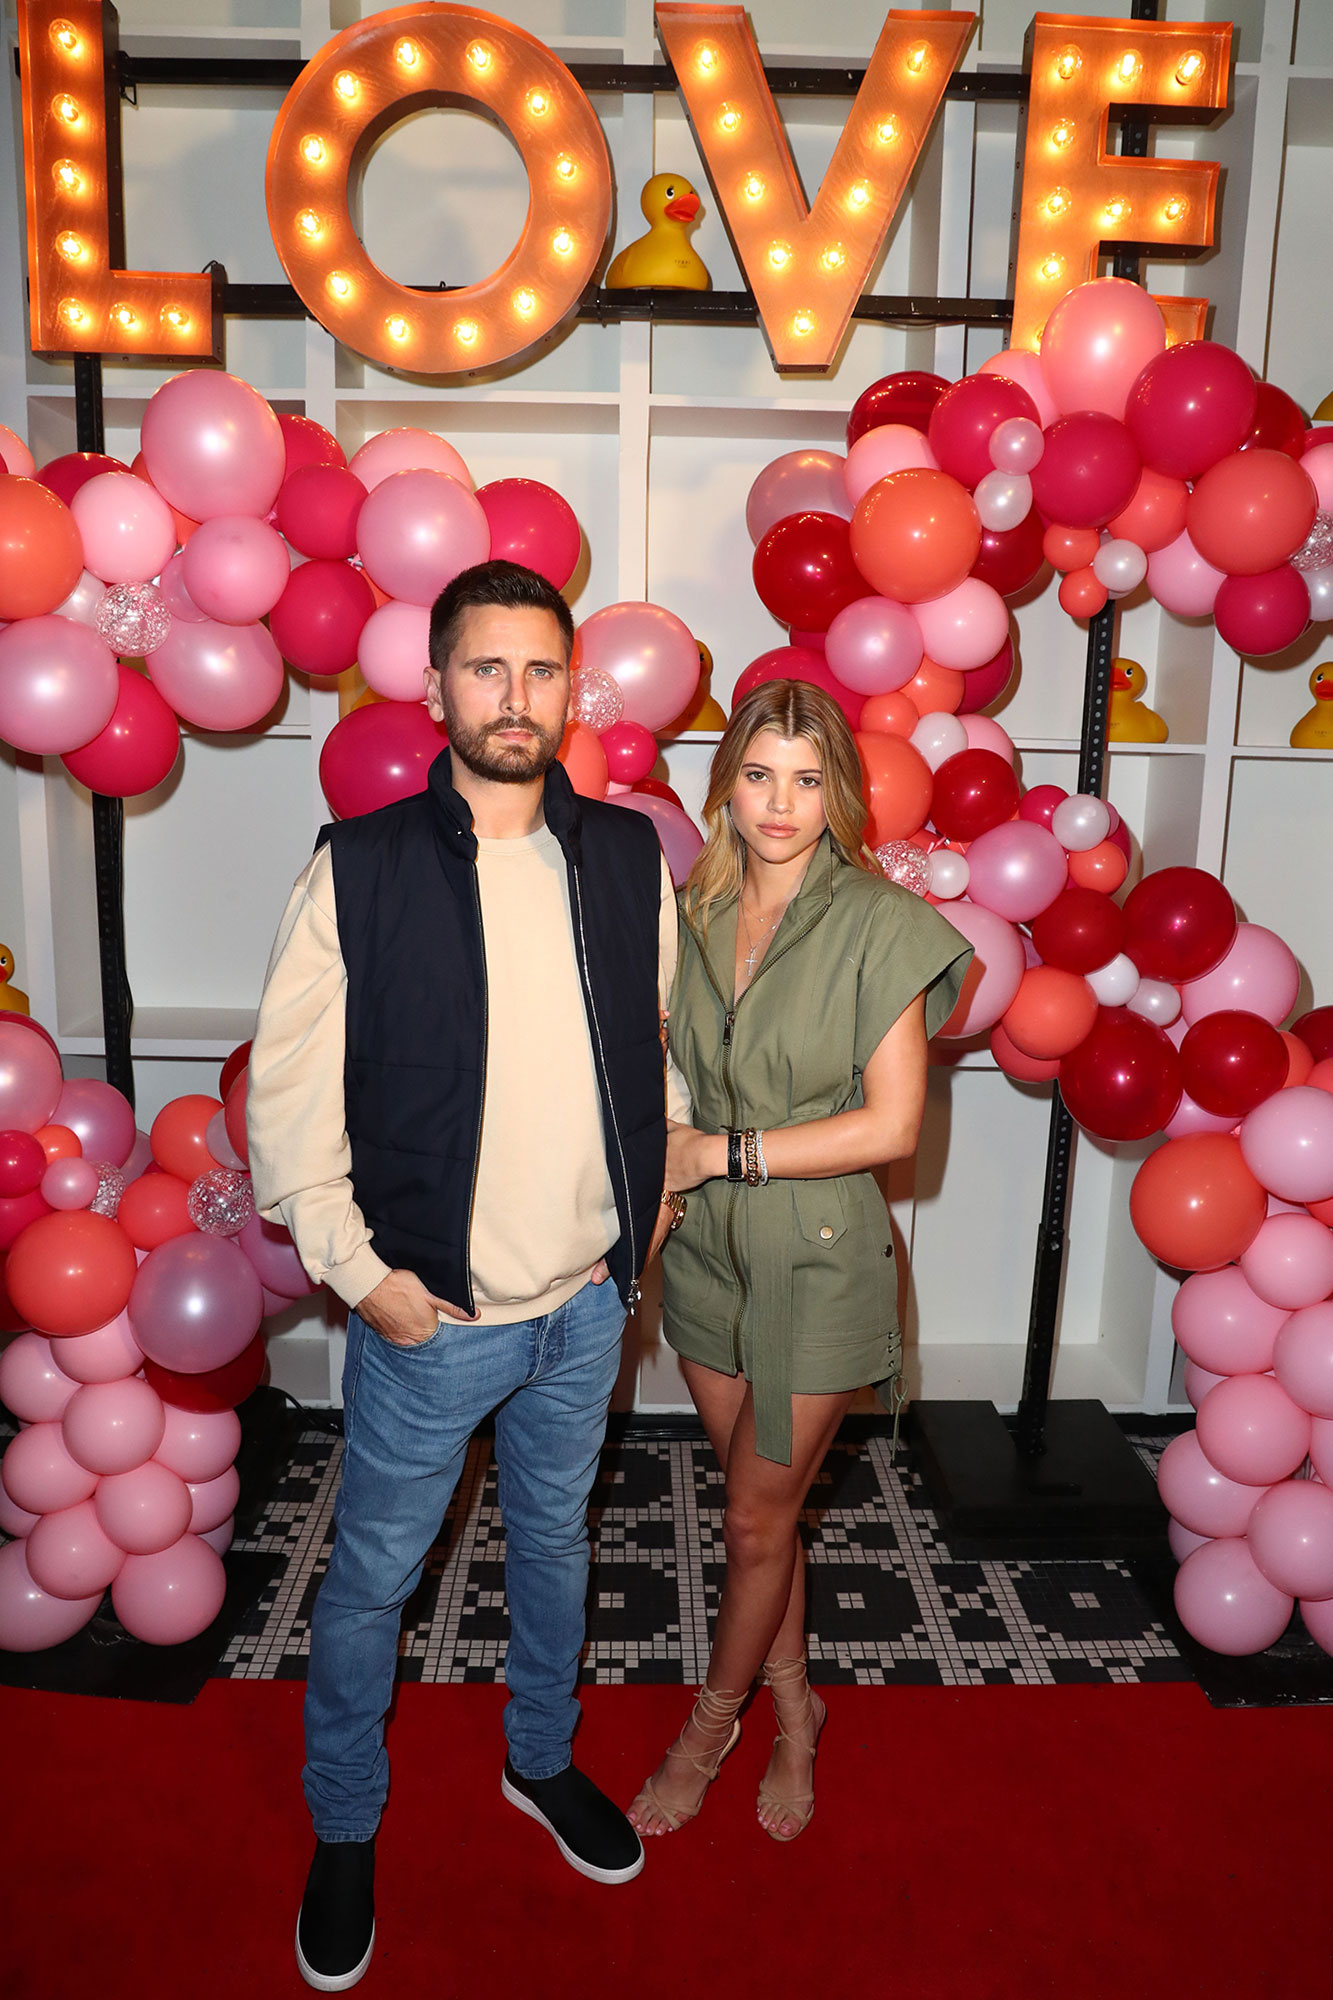 Scott Disick And Sofia Richie Celebrate Valentine's Day At San Diego's New Theatre Box® Entertainment Complex With Dinner At Sugar Factory American Brasserie